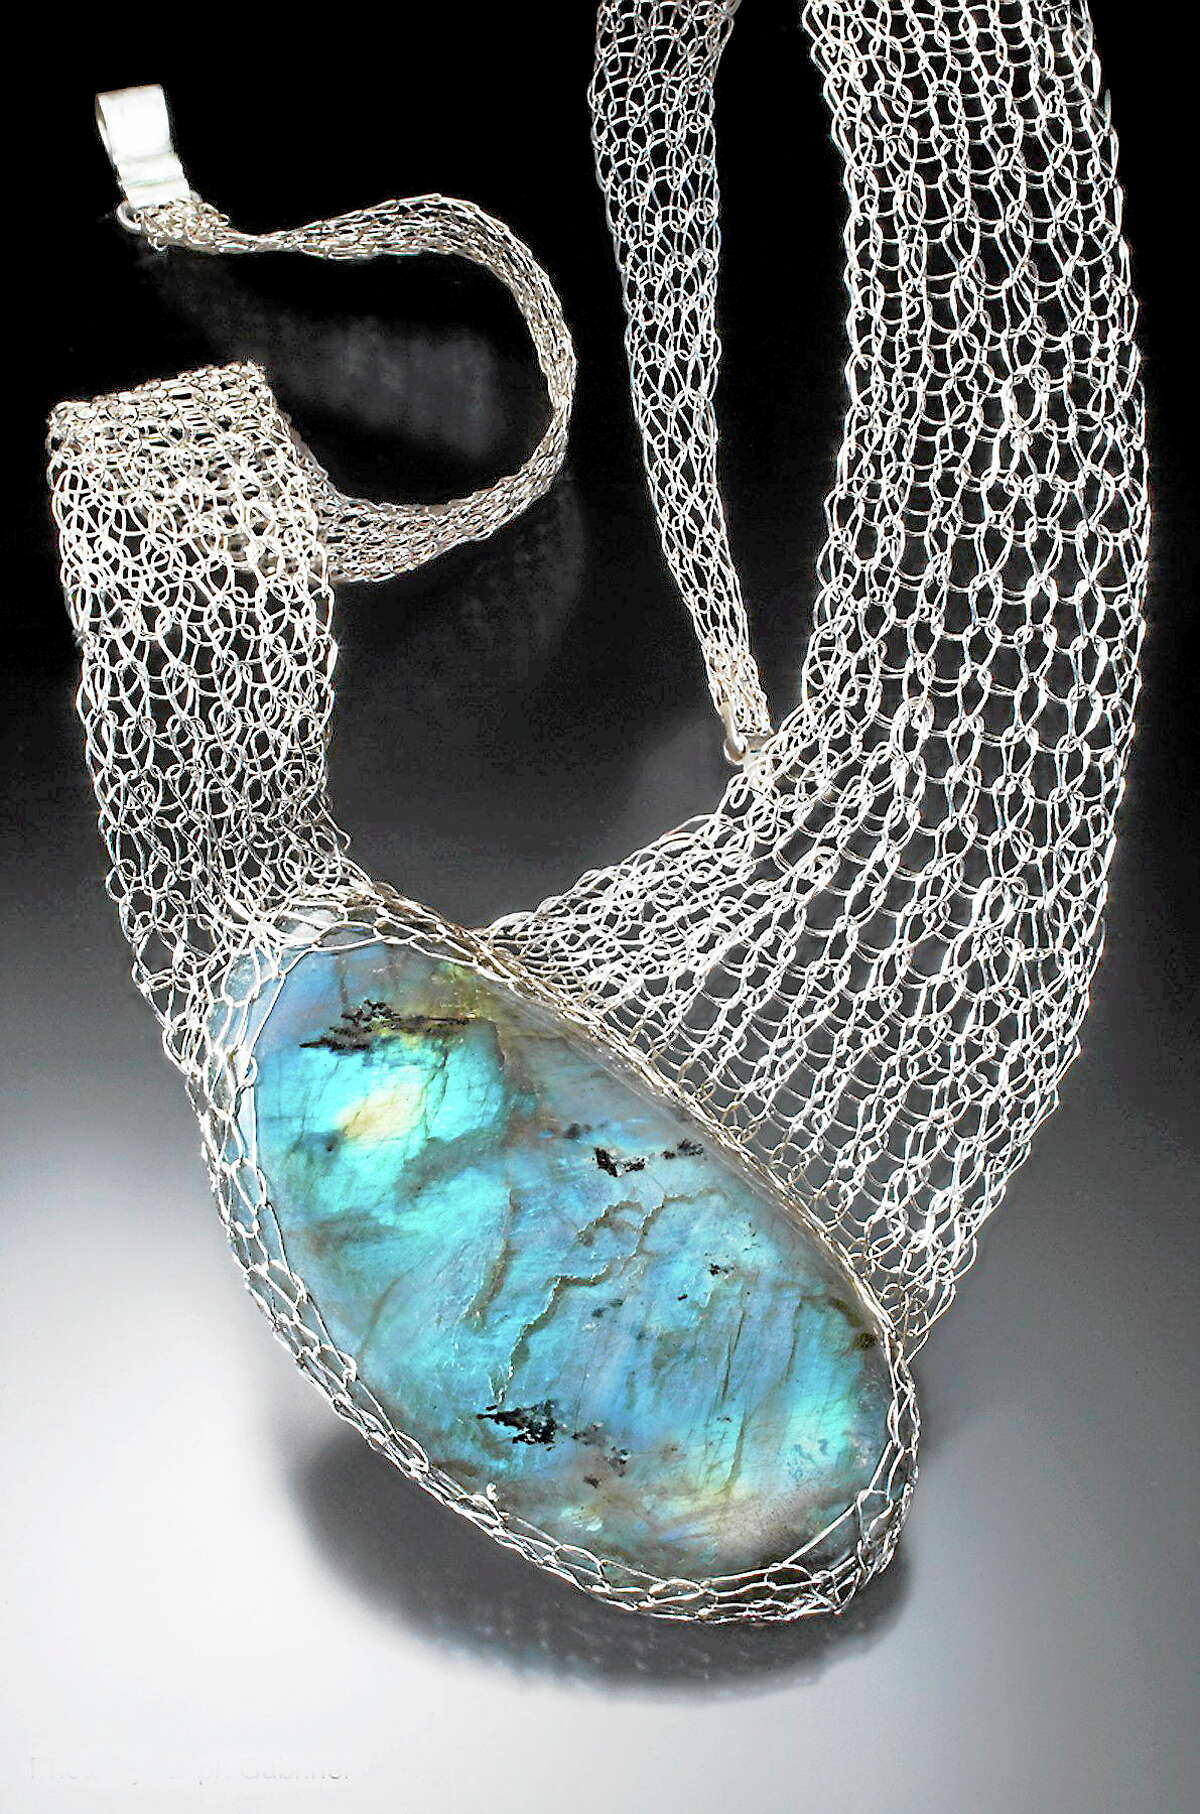 Marla Rudnick knits and weaves jewelry in silver and gold.